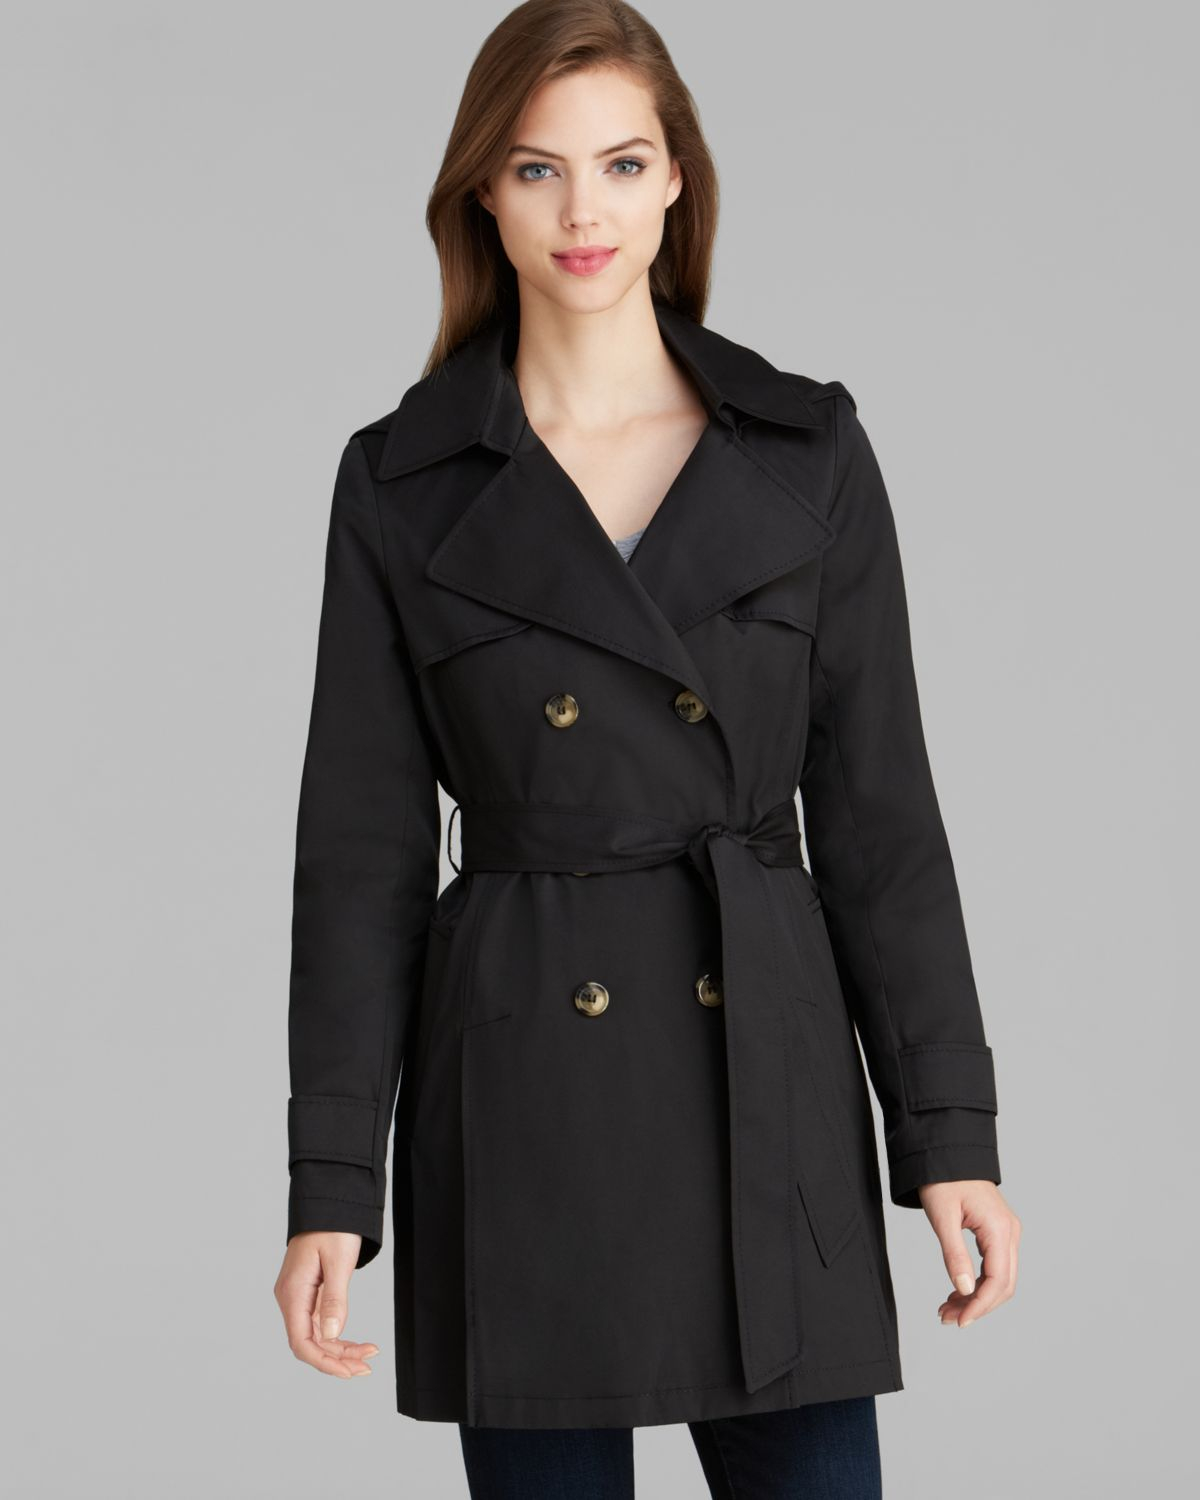 100% satisfaction genuine autumn shoes DKNY Abby Hooded Trench Coat in Black - Lyst